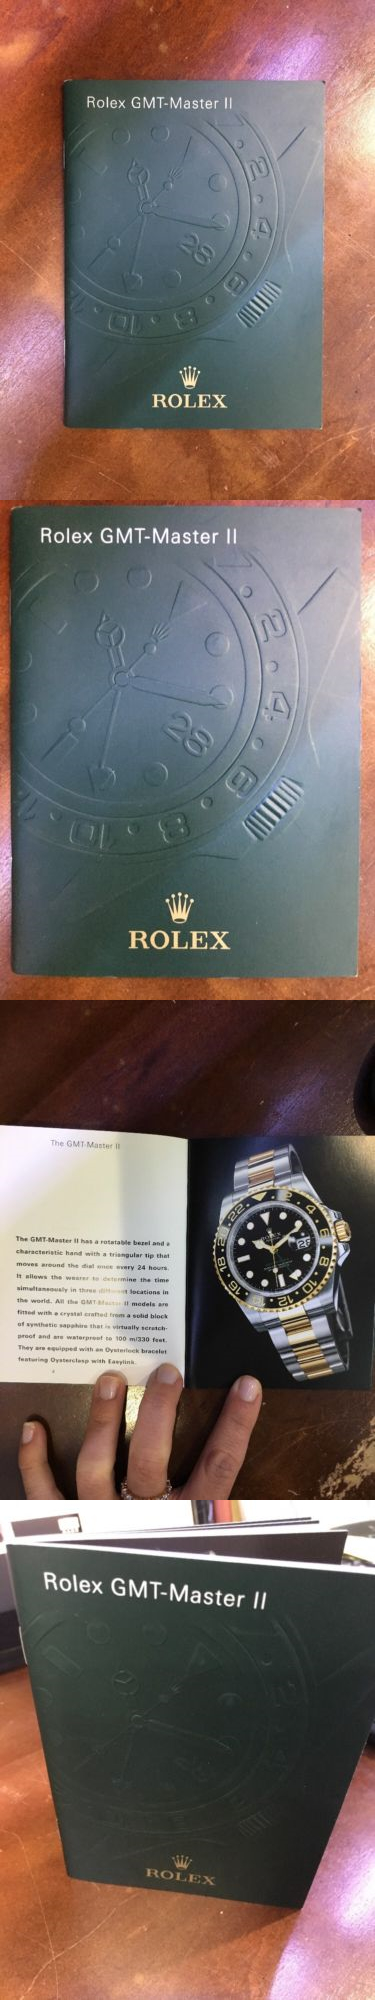 manuals and guides 93720 rolex gmt master ii manual for ceramic gmt rh pinterest com rolex gmt master ii brochure rolex gmt master ii user manual pdf